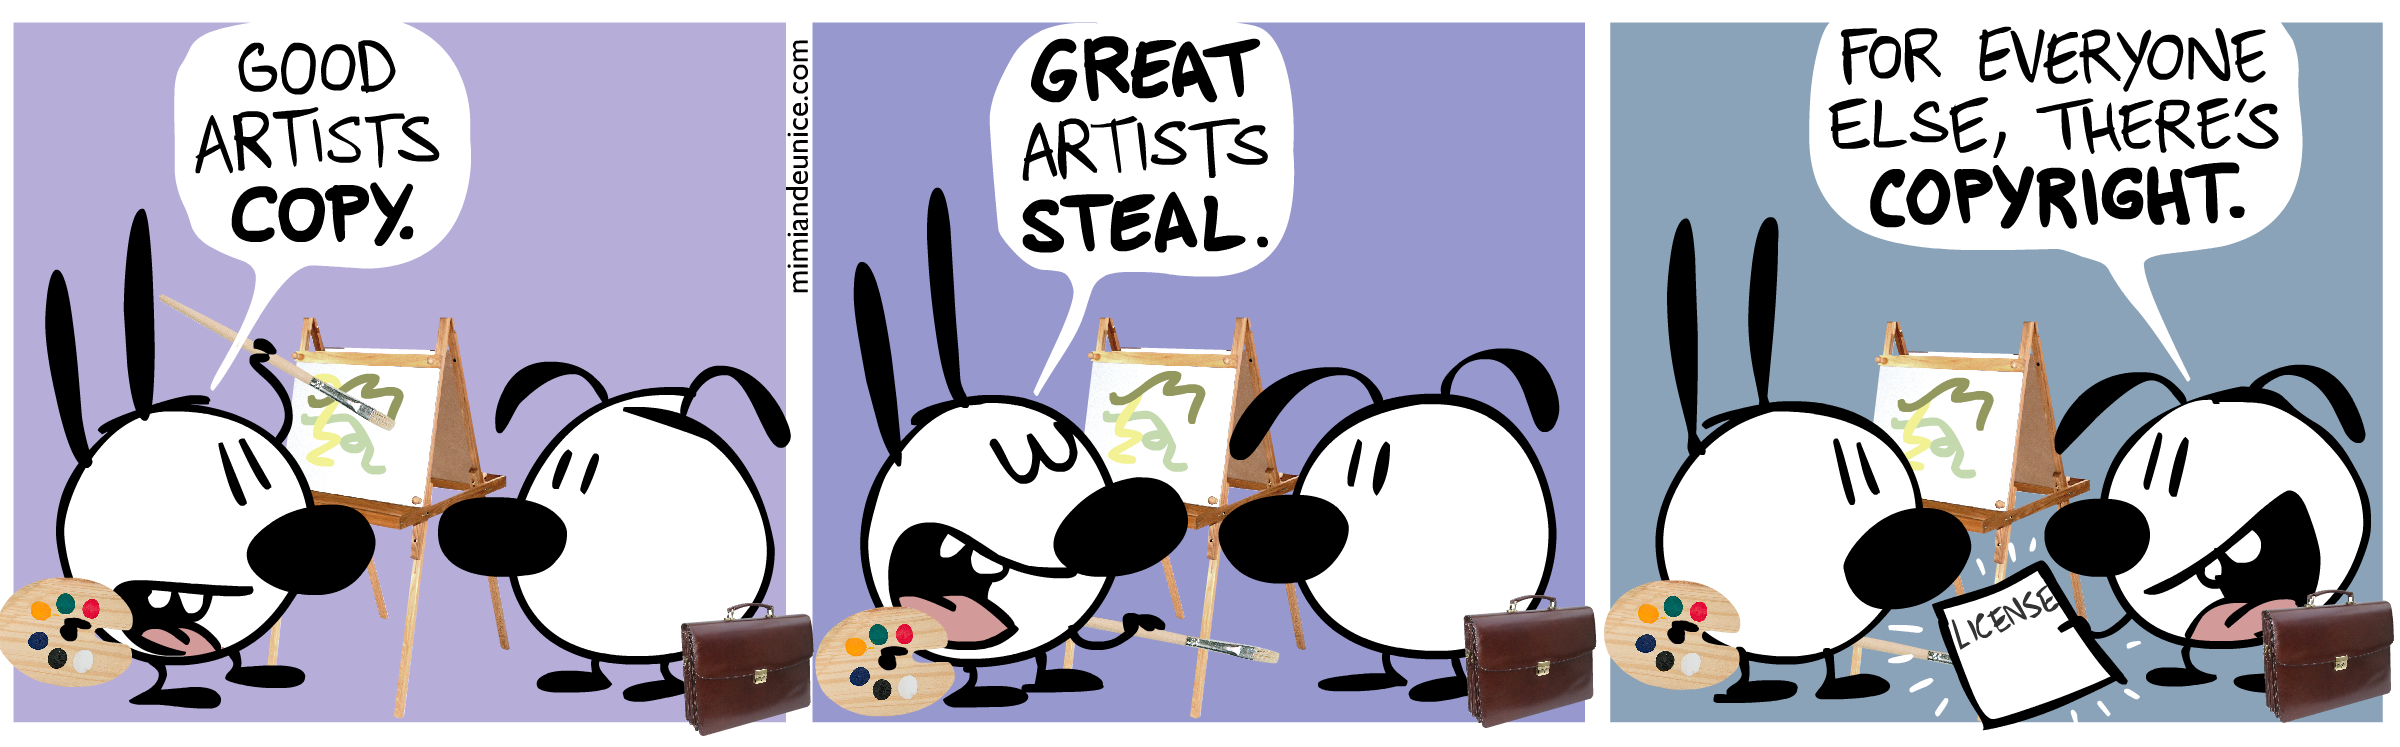 THE GREAT ARTISTS